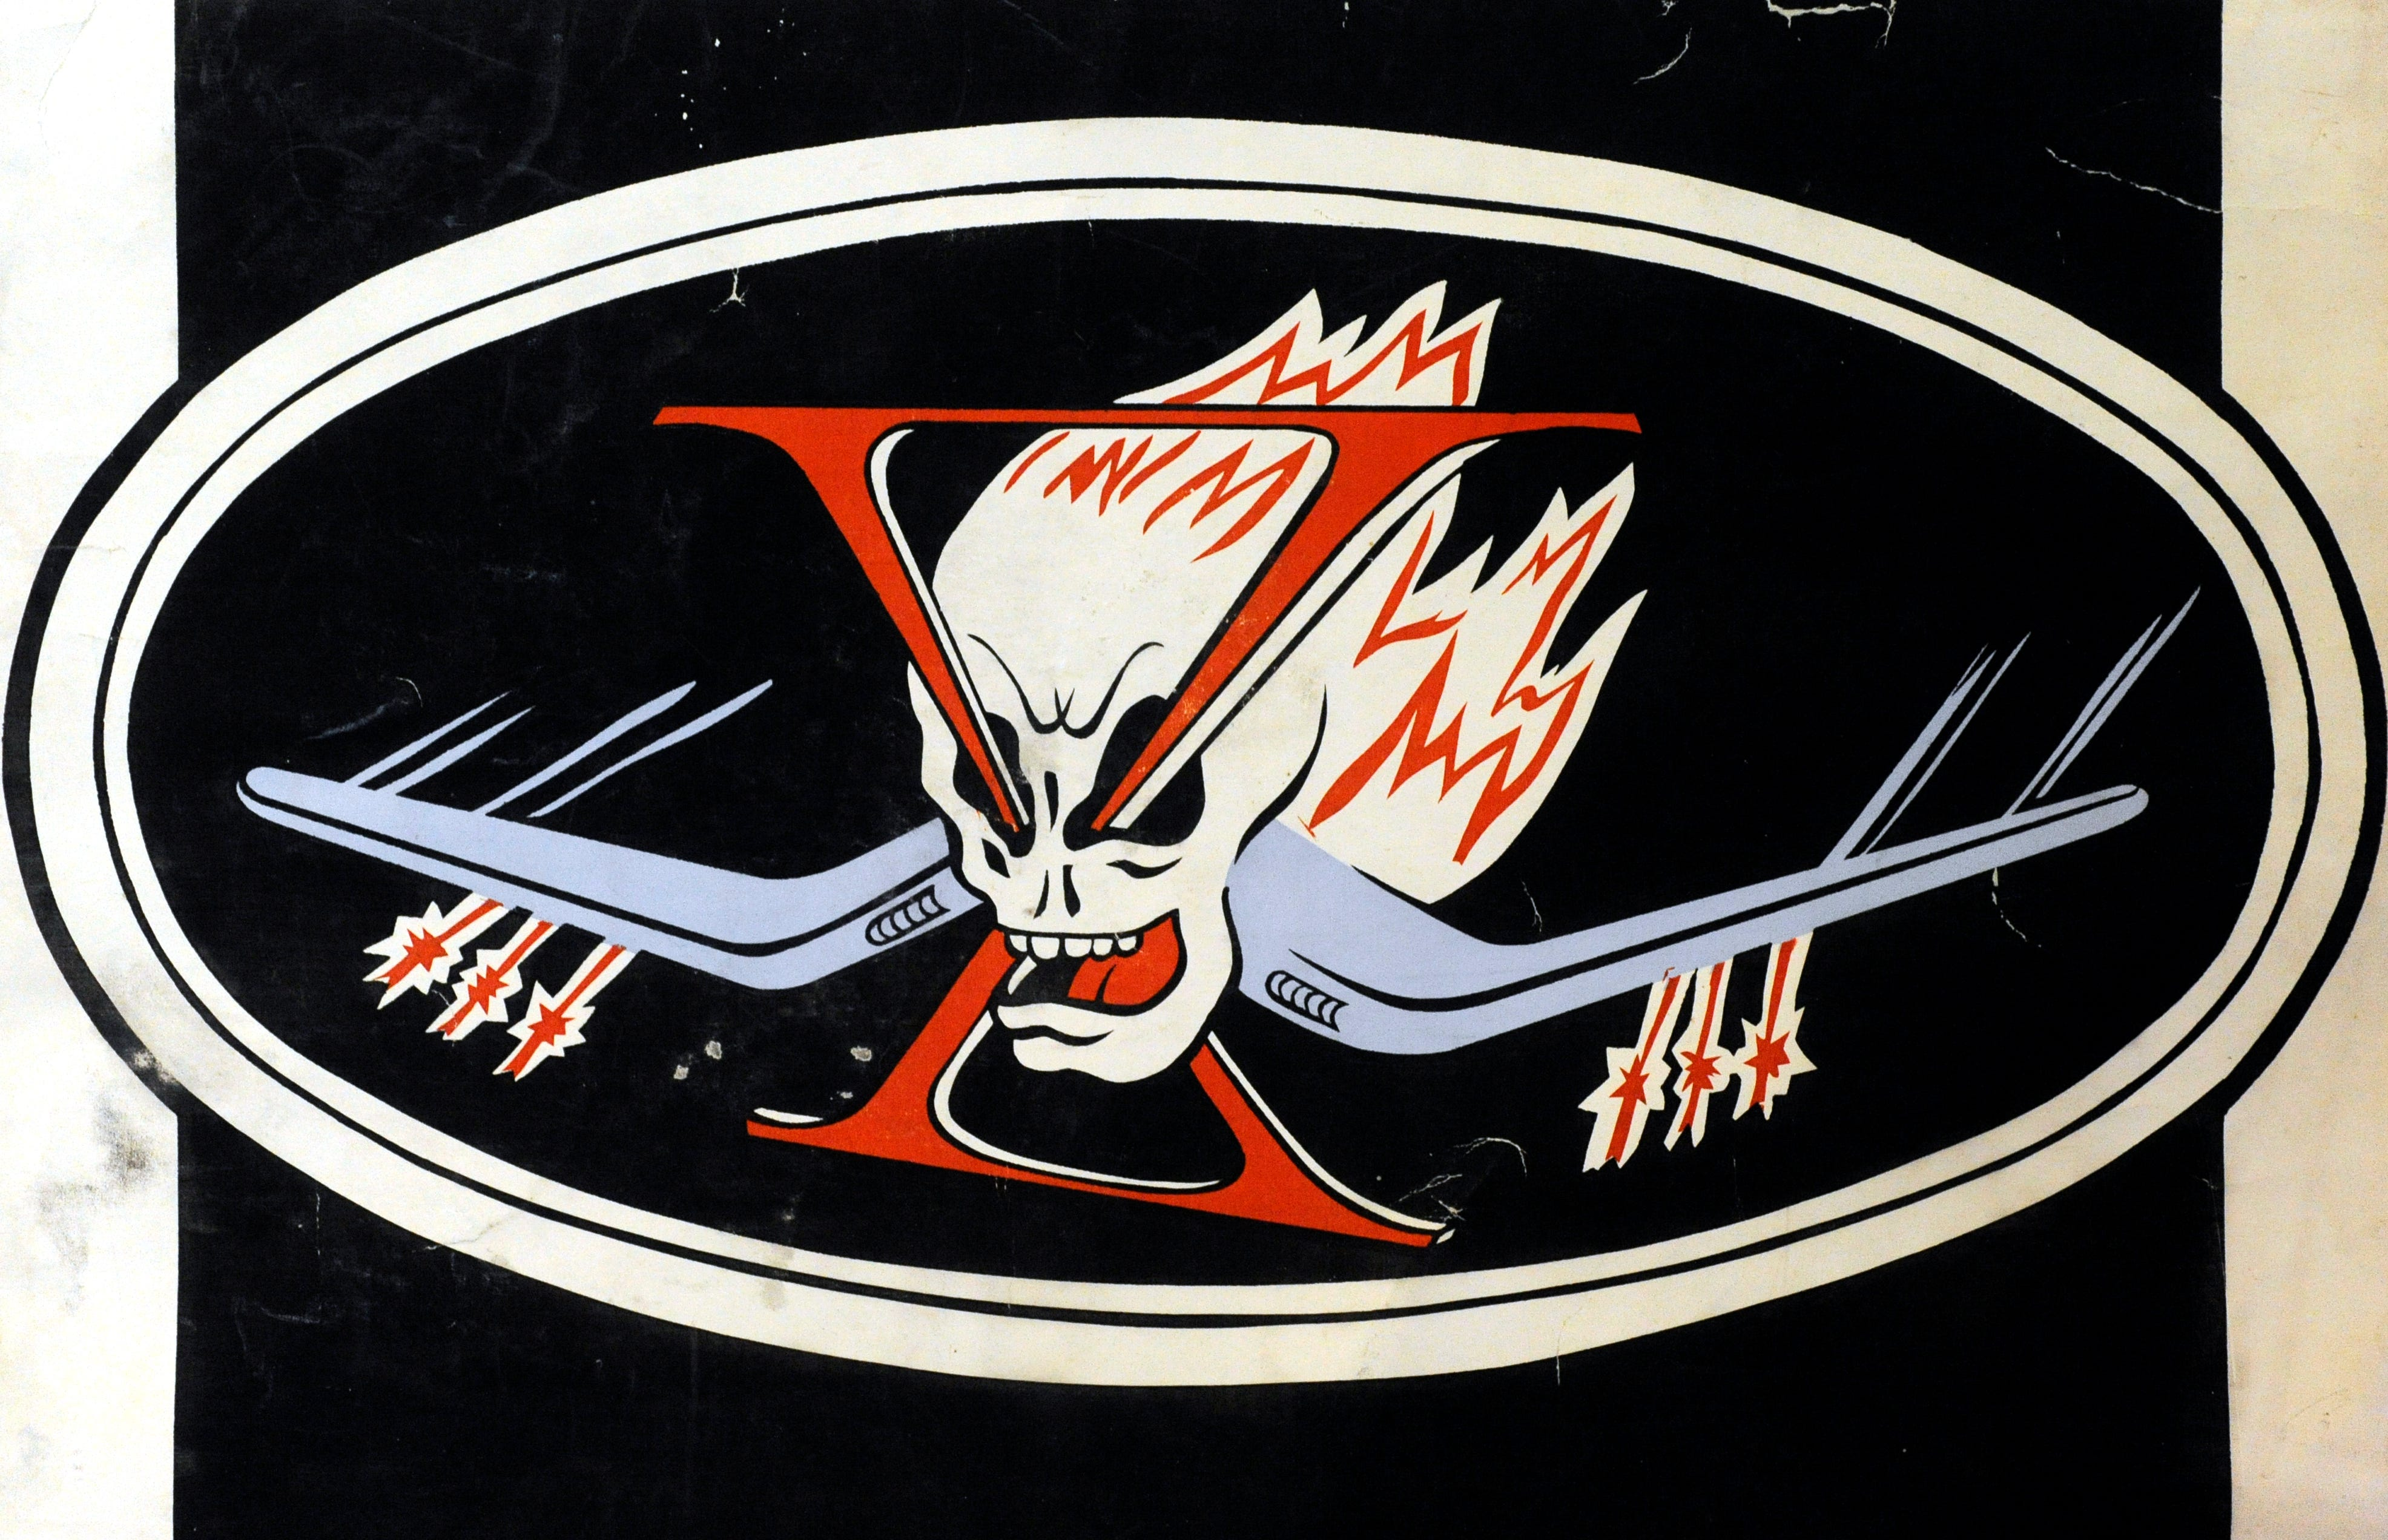 The insignia for VBF-10, the fighter-bomber squadron Wes Hays was assigned to aboard the USS Intrepid during WWII.